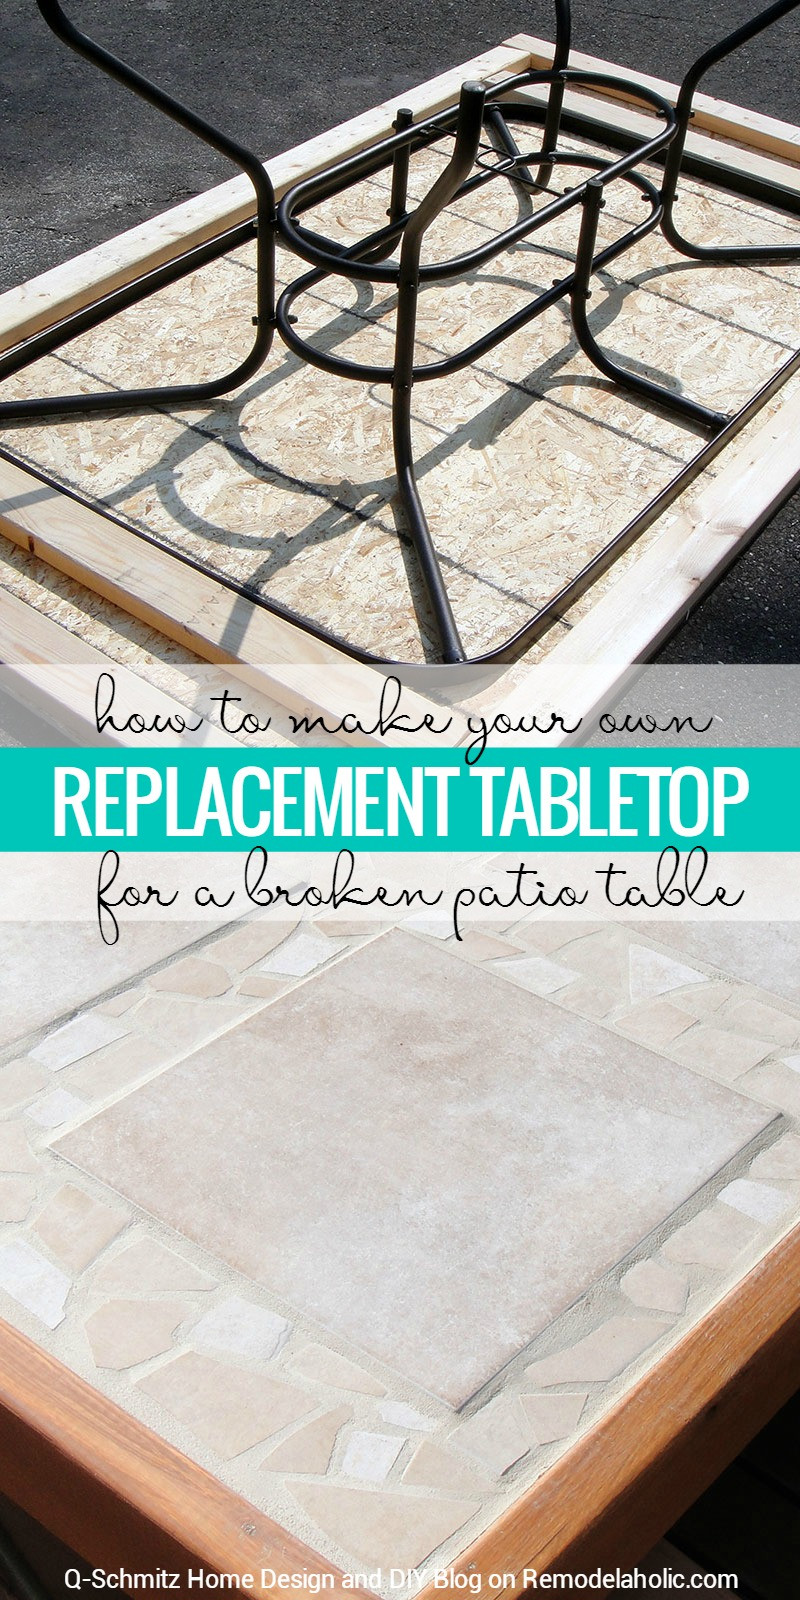 Best ideas about DIY Table Tops . Save or Pin Remodelaholic Now.